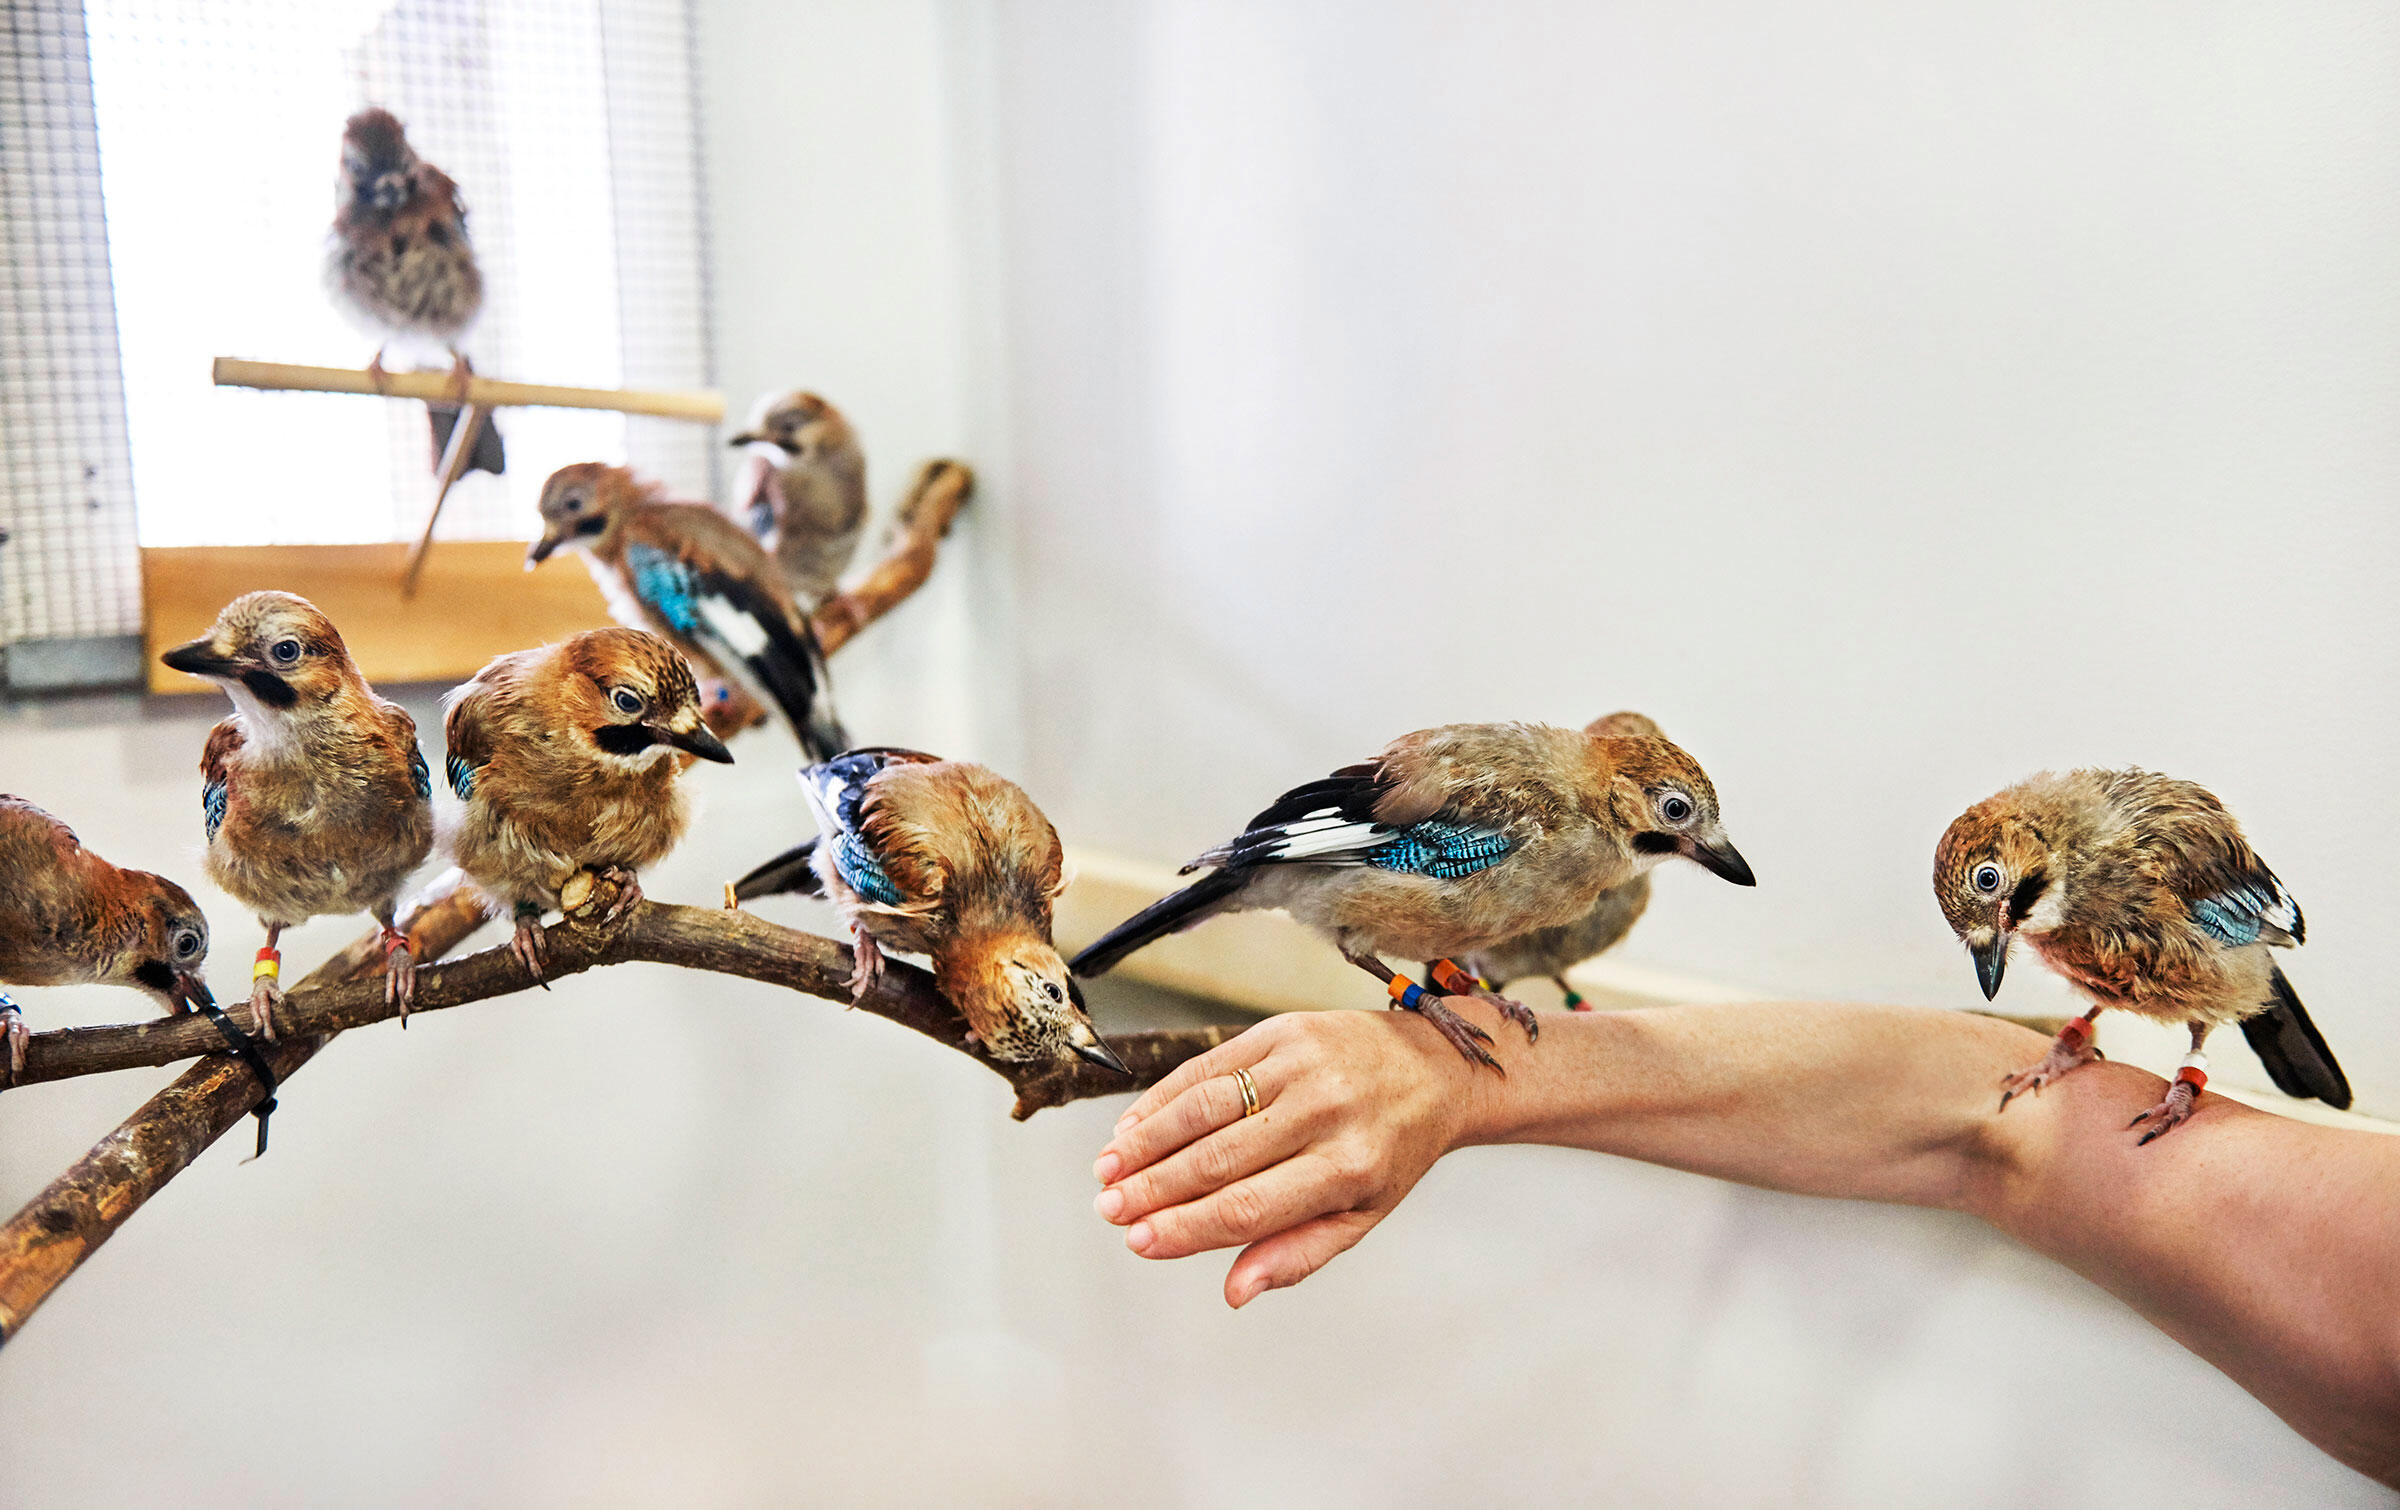 Eurasian Jays have long been counted among the world's smartest corvids, and they are expert mimics. Another impressive finding: They possess the ability to empathize with others. Trevor Ray Hart